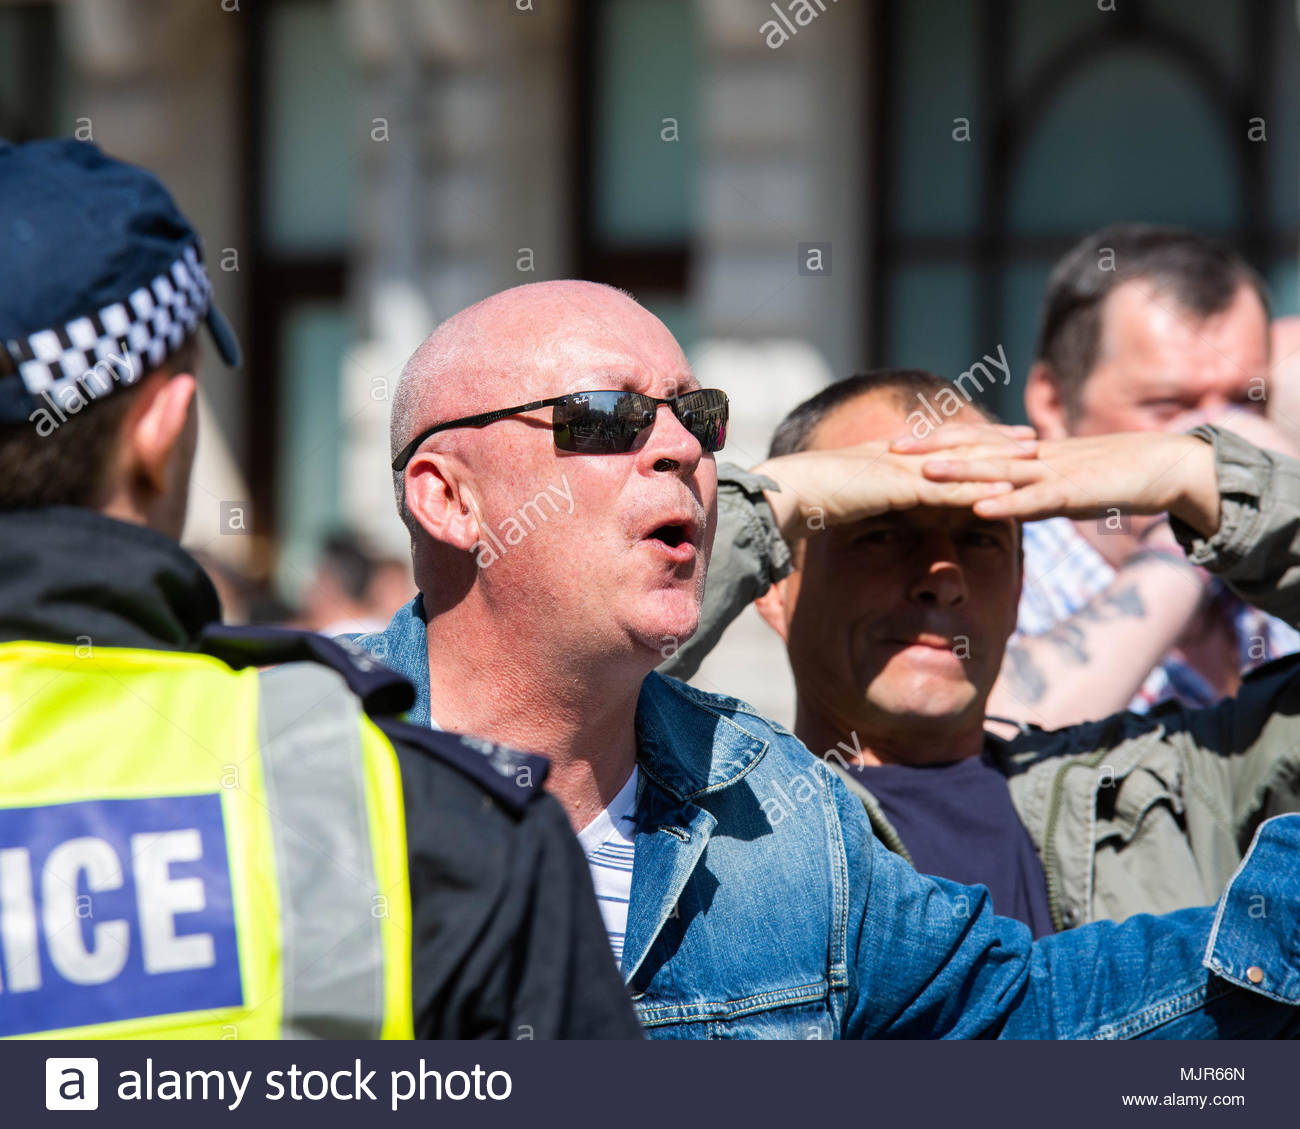 London, UK, 6 May 2018. Ex EDL leader Tommy Robinson holds his 'Day of Freedom' supported by The Football Lads Alliance, hundreds of antifascists oppose the Far-right gathering. ©2018 London, Great Britain. Credit: David Nash/Alamy Live News - Stock Image